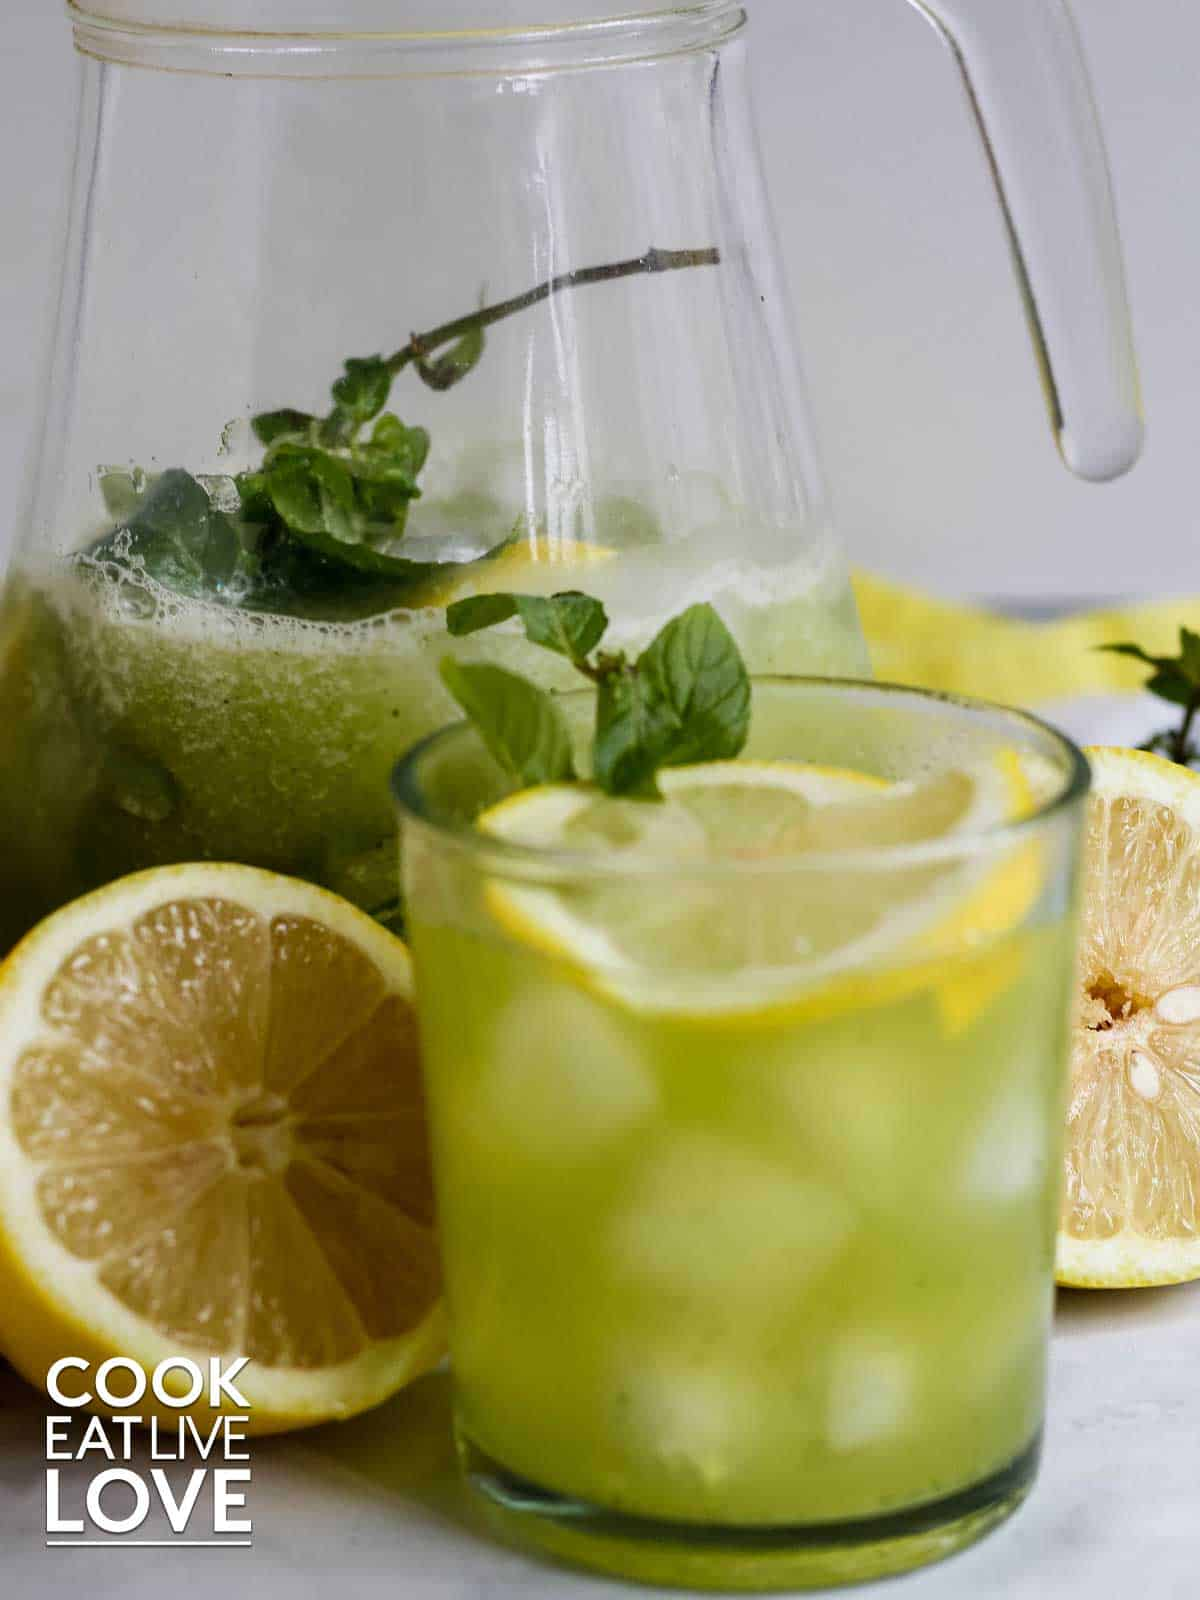 Glass filled with cucumber lemonade with lemon wheel floating on top. In background is pitcher with lemonade and lemon halves around both.